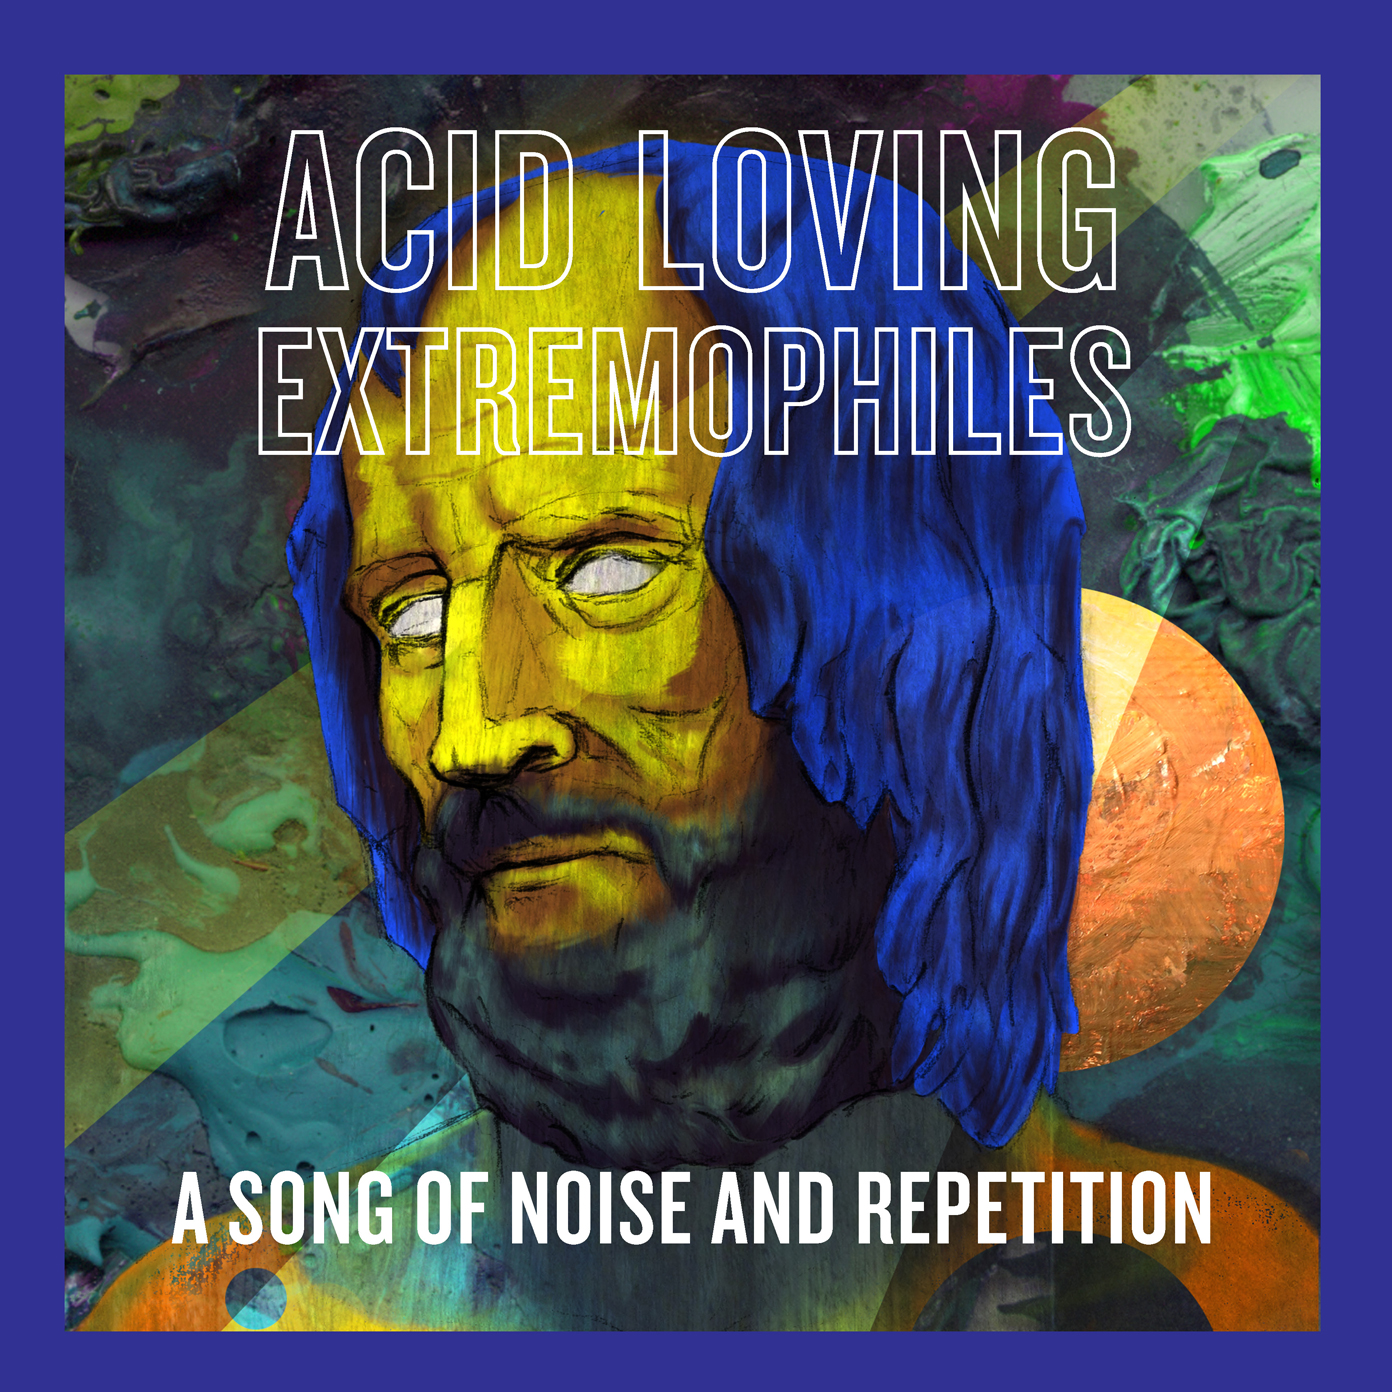 A Song of Noise and Repetition